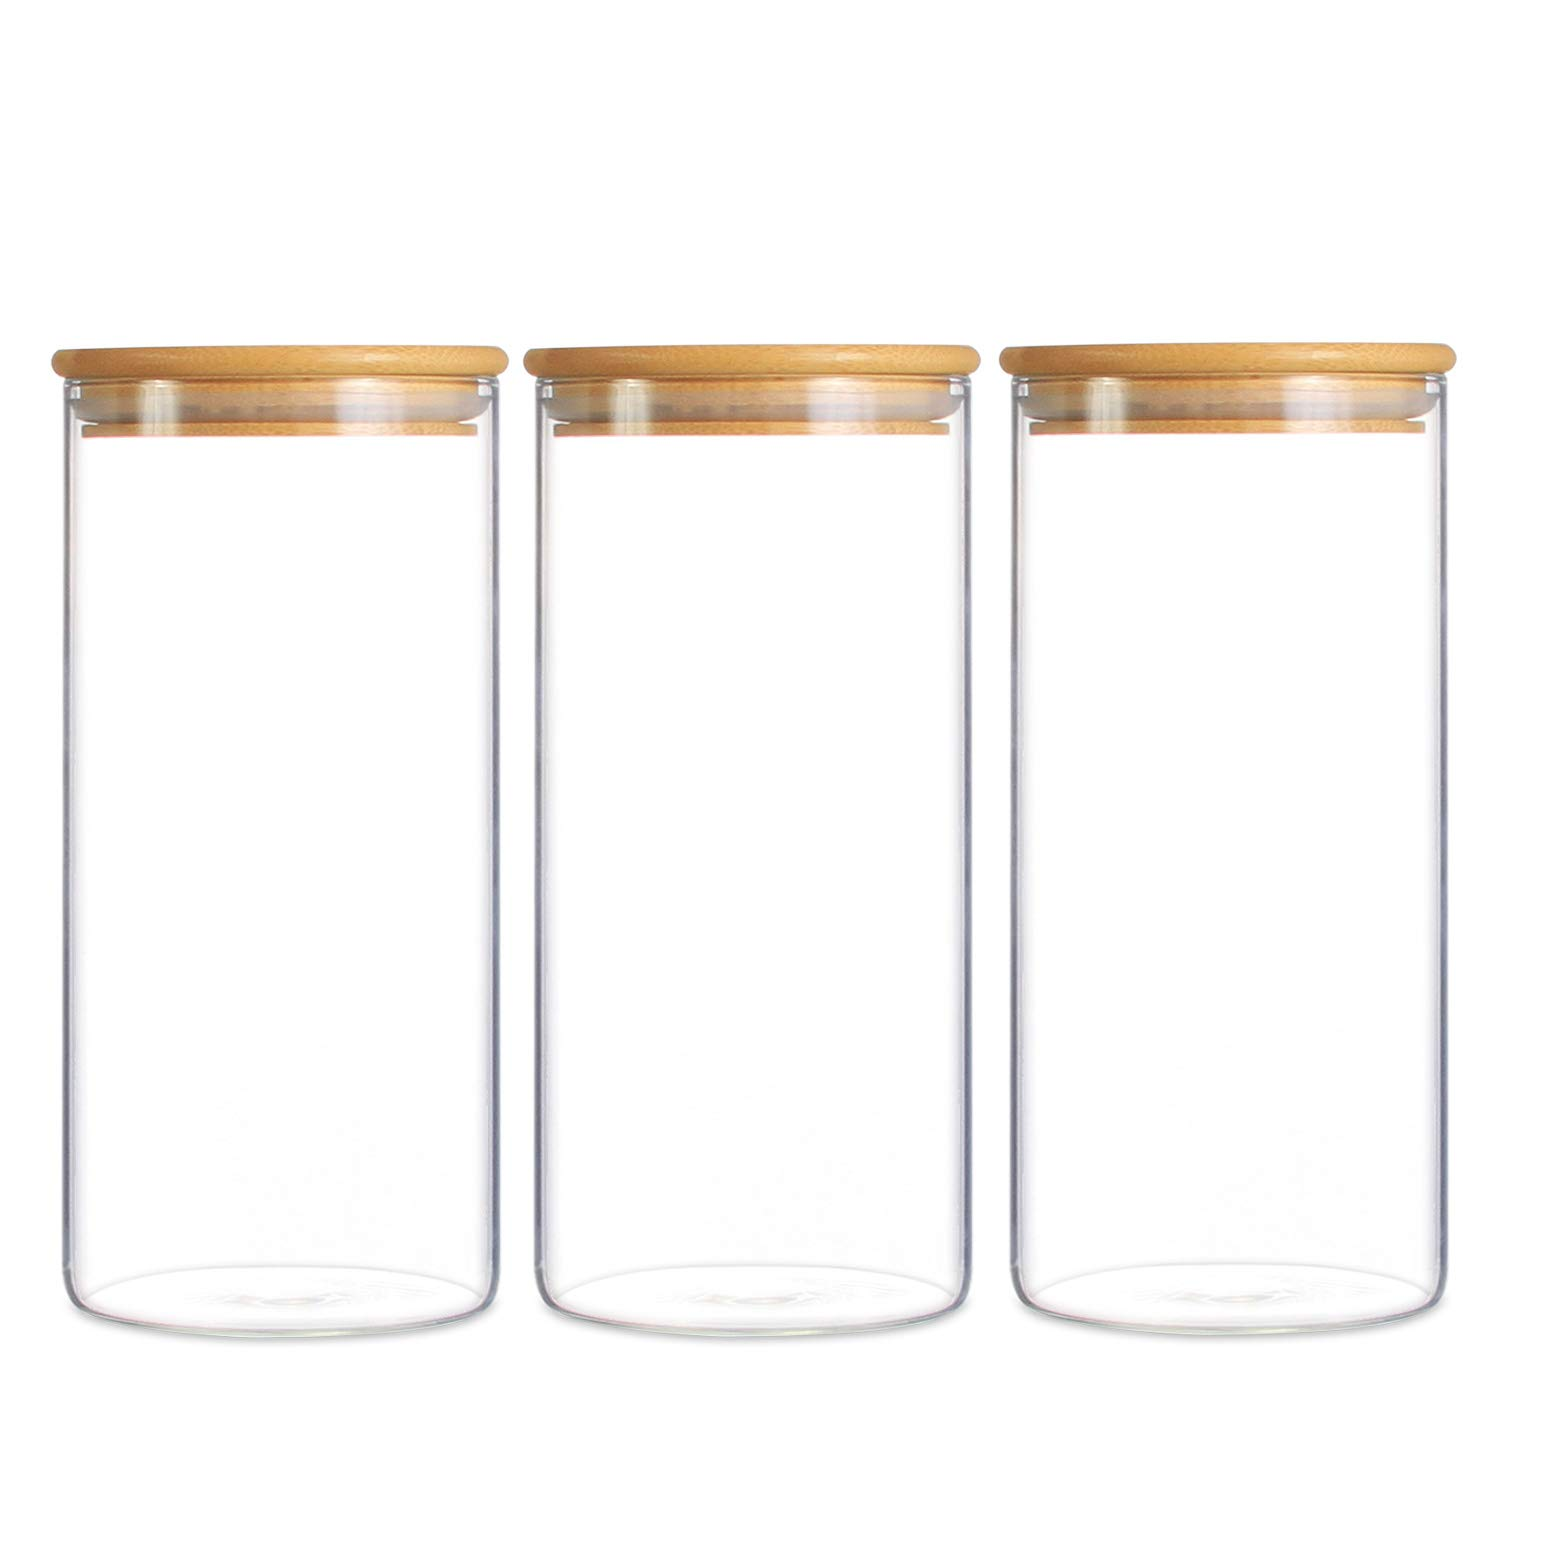 Good Quality Cosmetic Cream Jar - Straight Glass Storage Jar, Glass Food Jar with Bamboo Lid –  Hoyer